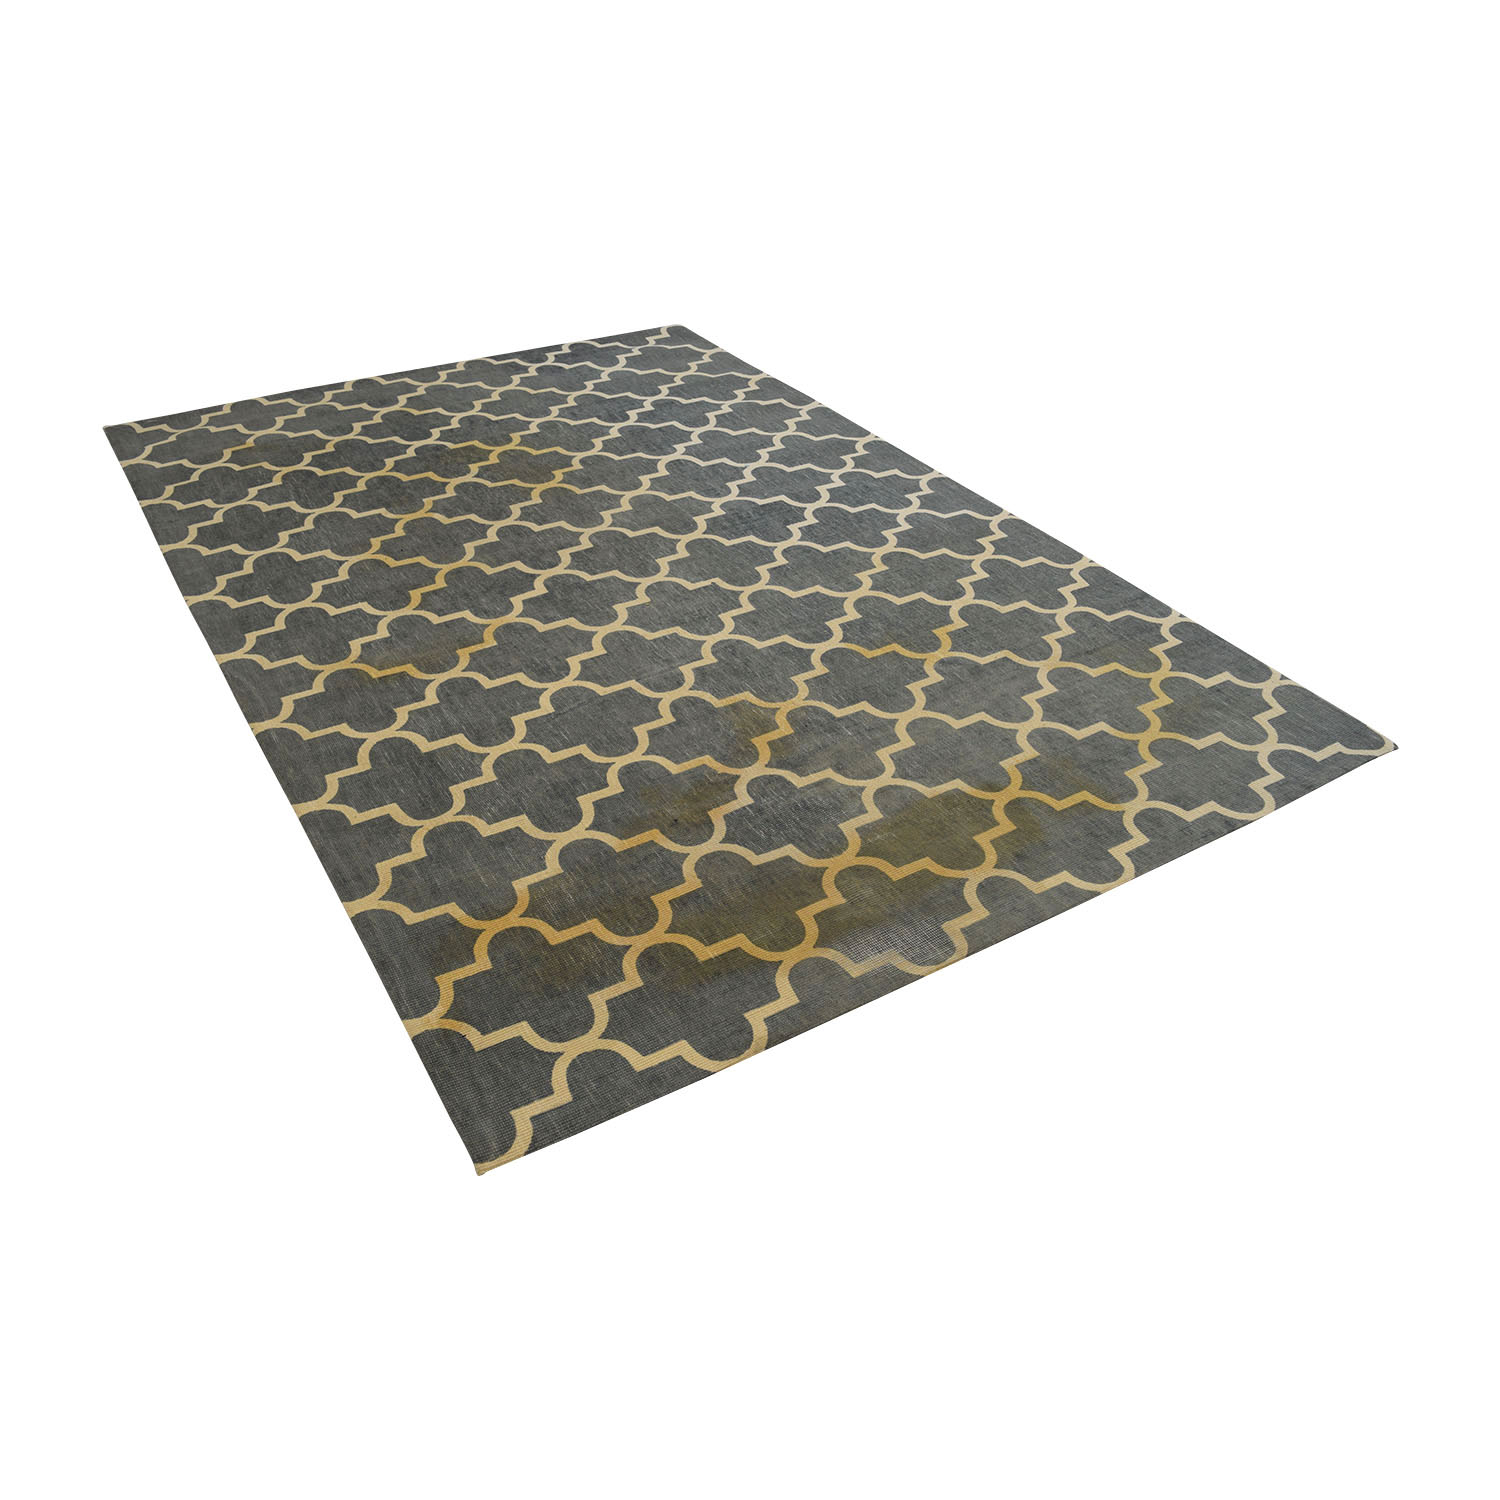 buy World Market Moroccan Green and White Rug World Market